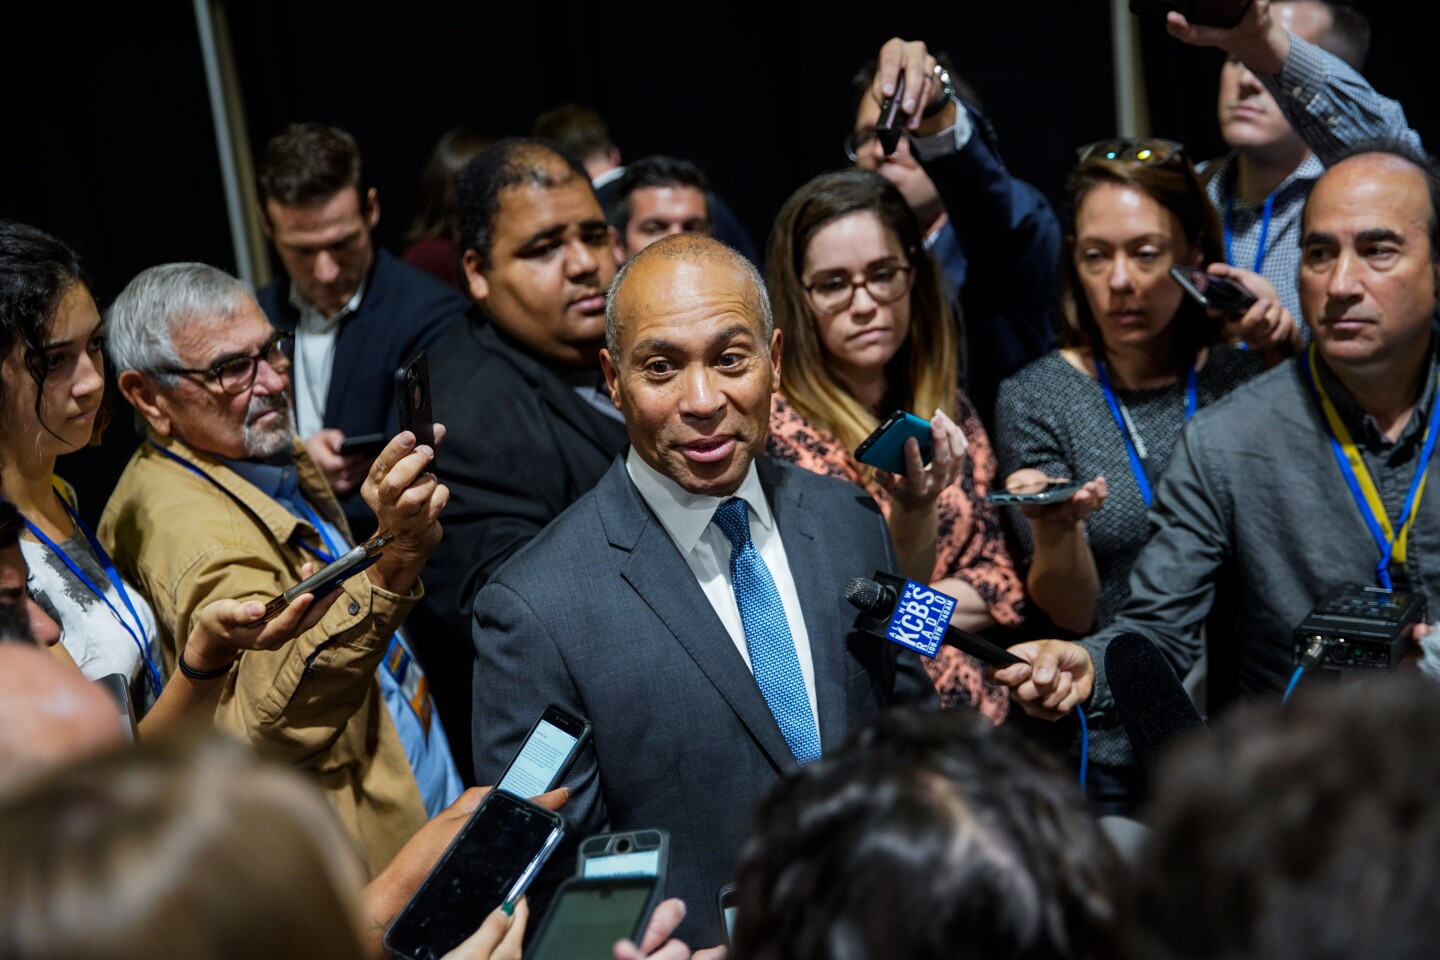 LONG BEACH, CALIF. - NOVEMBER 16: Presidential candidate and former Massachusetts governor Deval Patrick, surrounded by members of the media, speaks in the spin room, during the 2019 California Democratic Party Fall Endorsing Convention at the Long Beach Convention Center on Saturday, Nov. 16, 2019 in Long Beach, Calif. (Kent Nishimura / Los Angeles Times)